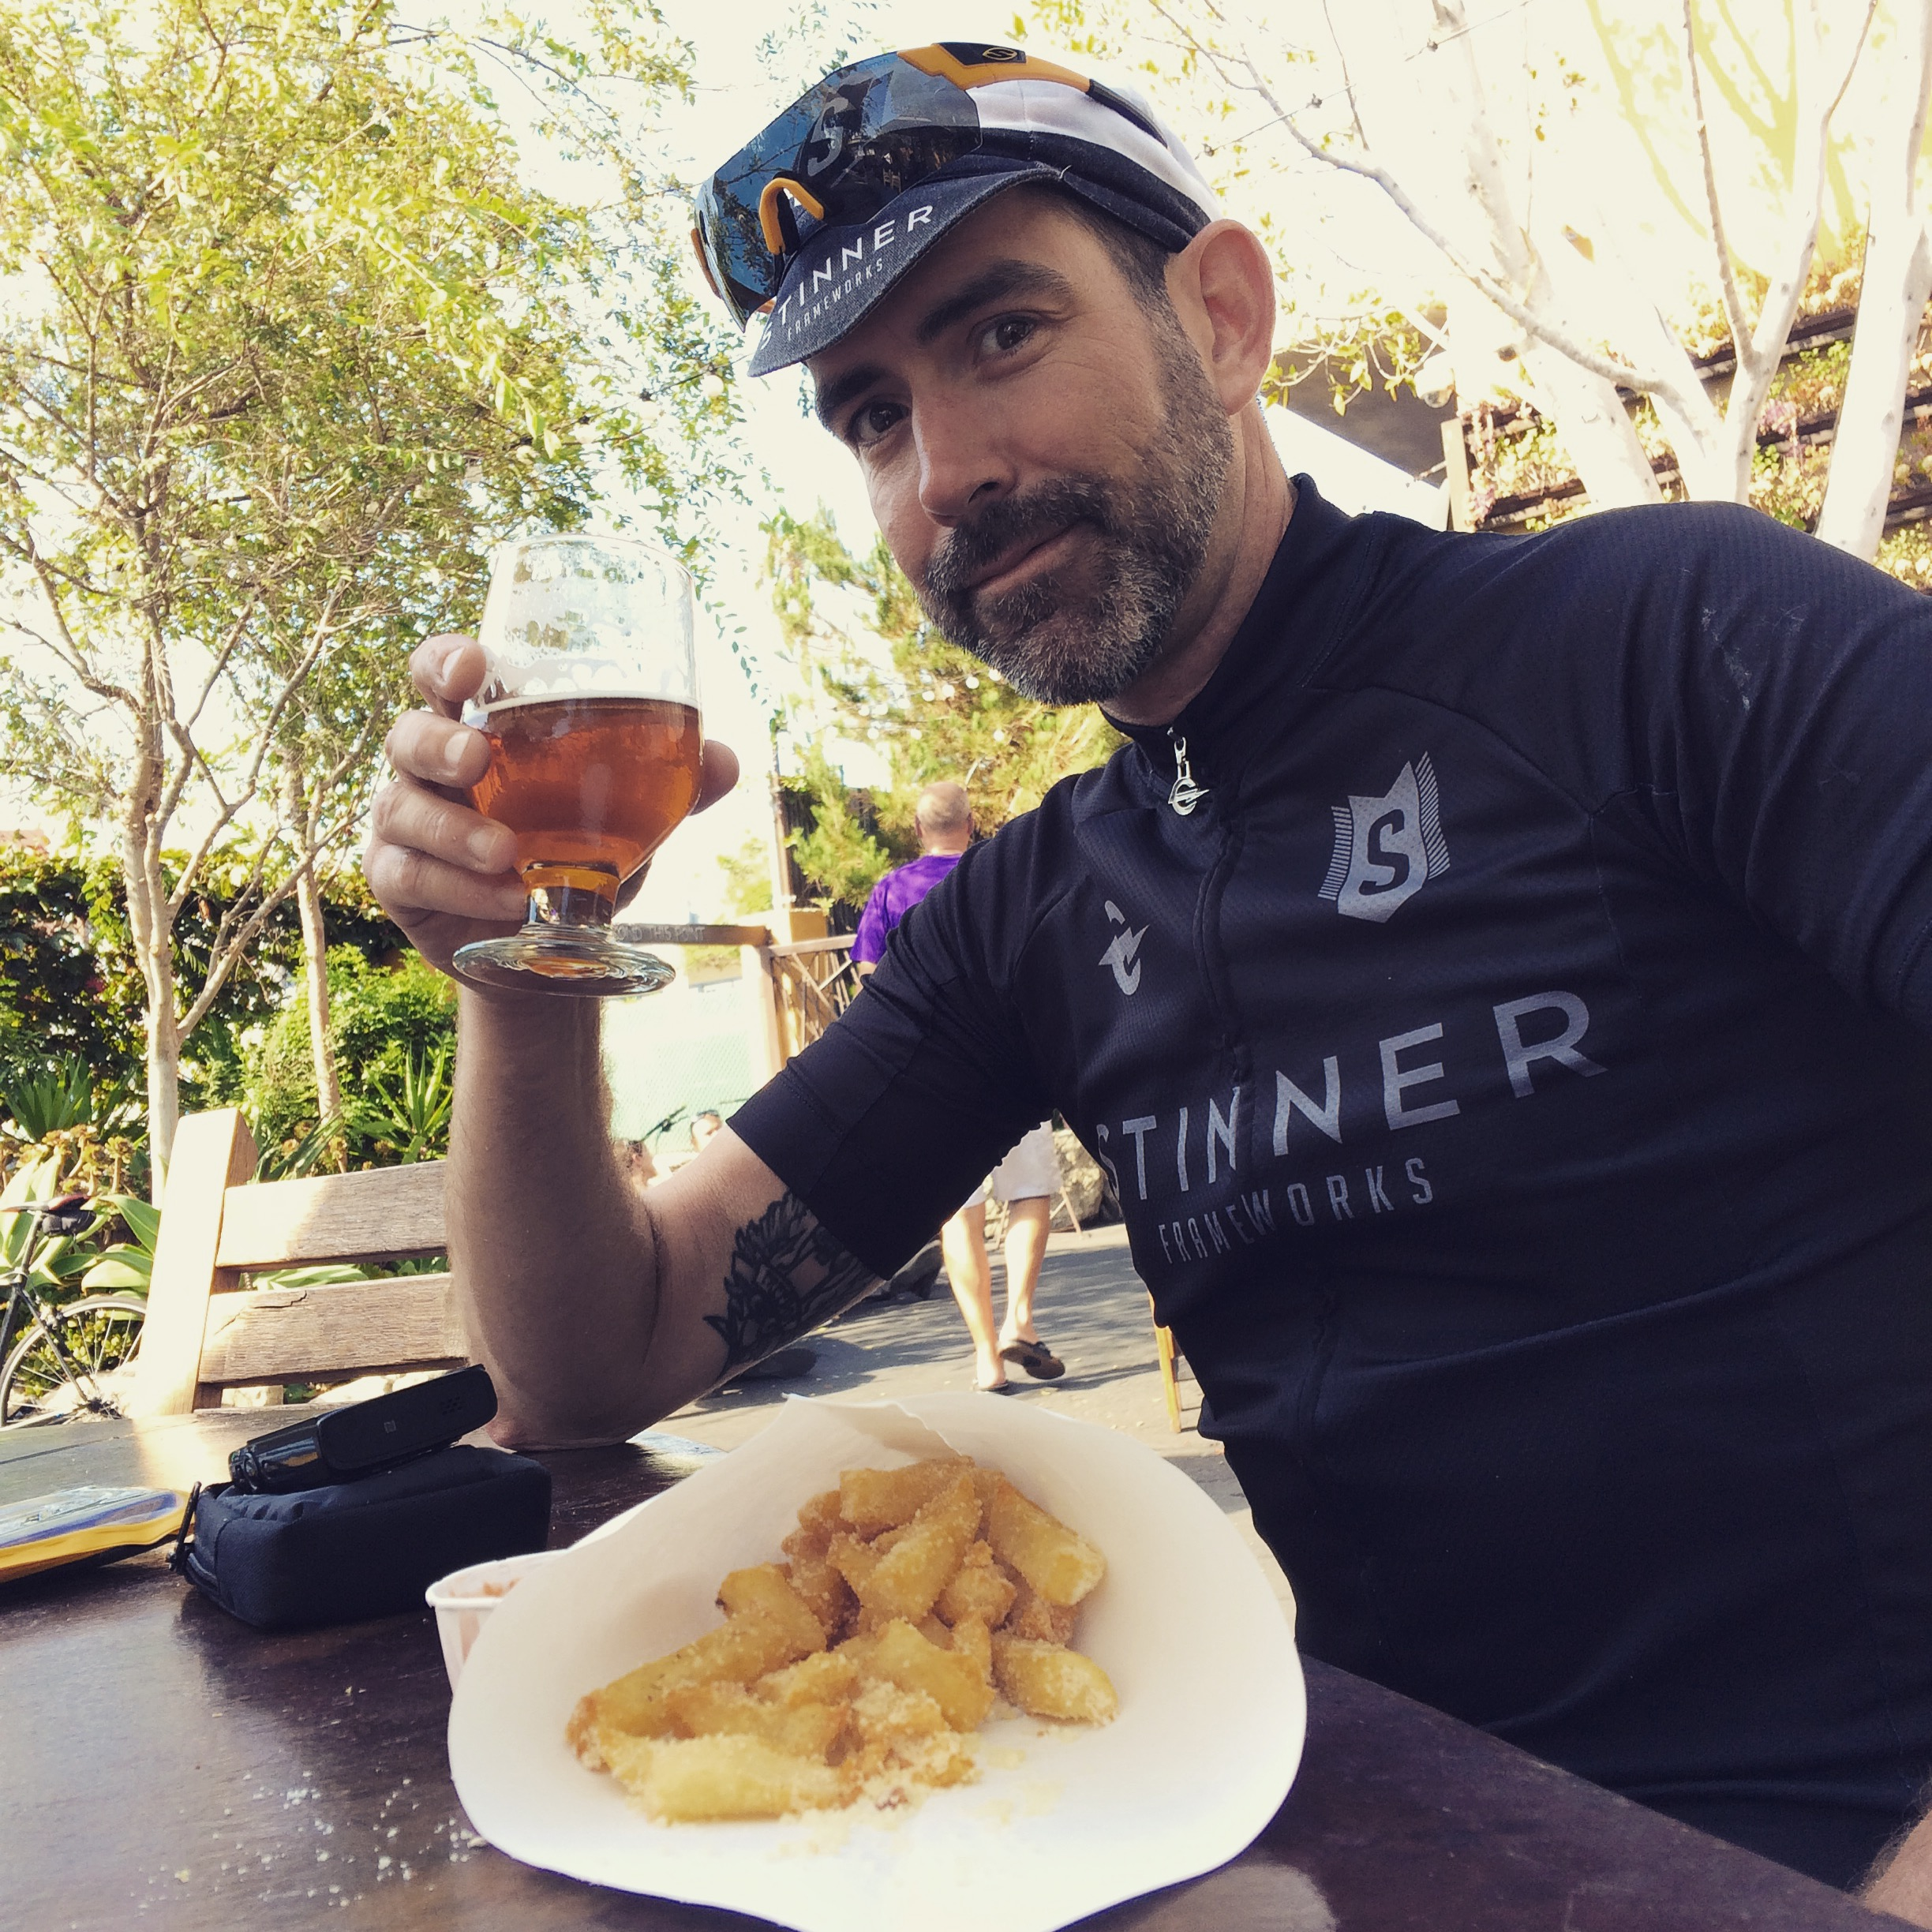 Beer and Belgian frites after sharing some miles with CJ at the Stone Brewery tasting room in Oceanside, CA. Doesn't get much better!